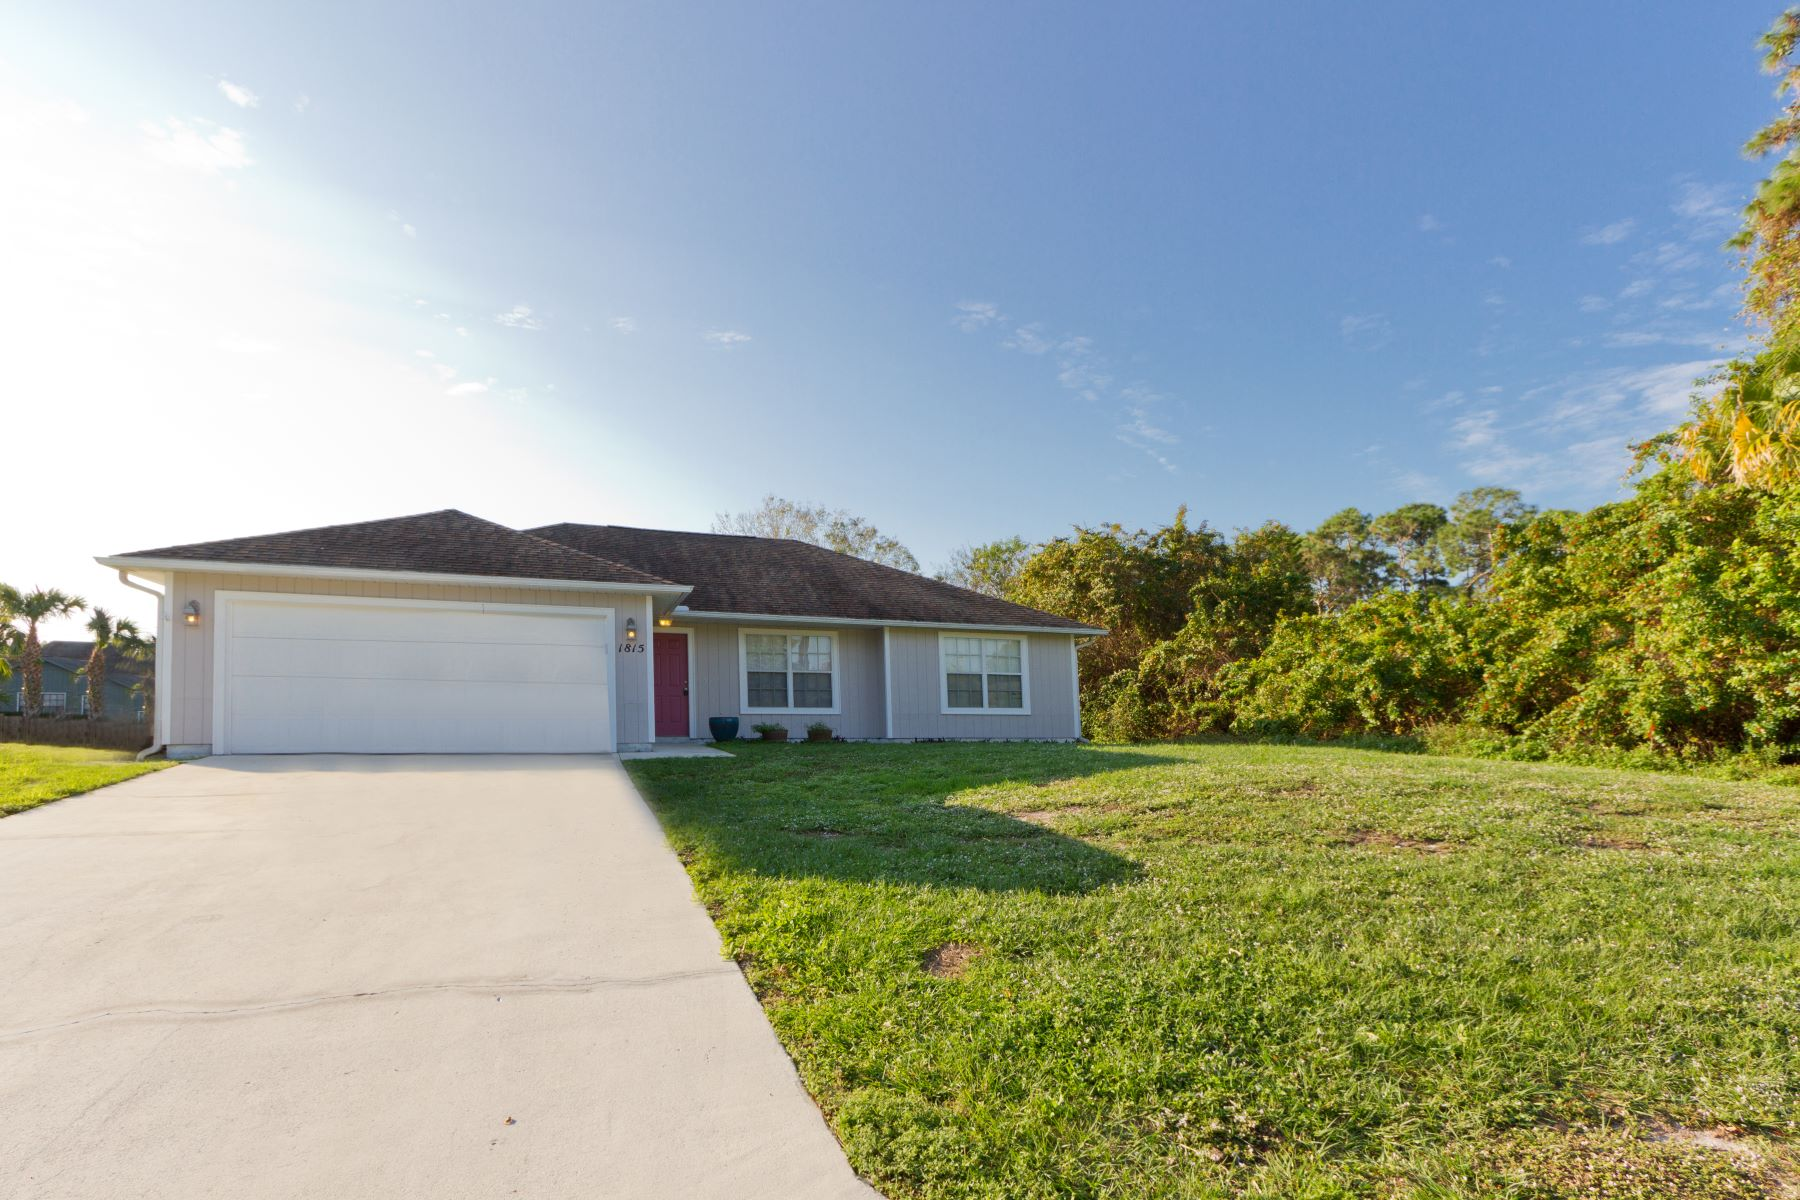 Single Family Homes for Sale at Charming Home with Huge Yard 1815 20th Place Sw Vero Beach, Florida 32962 United States